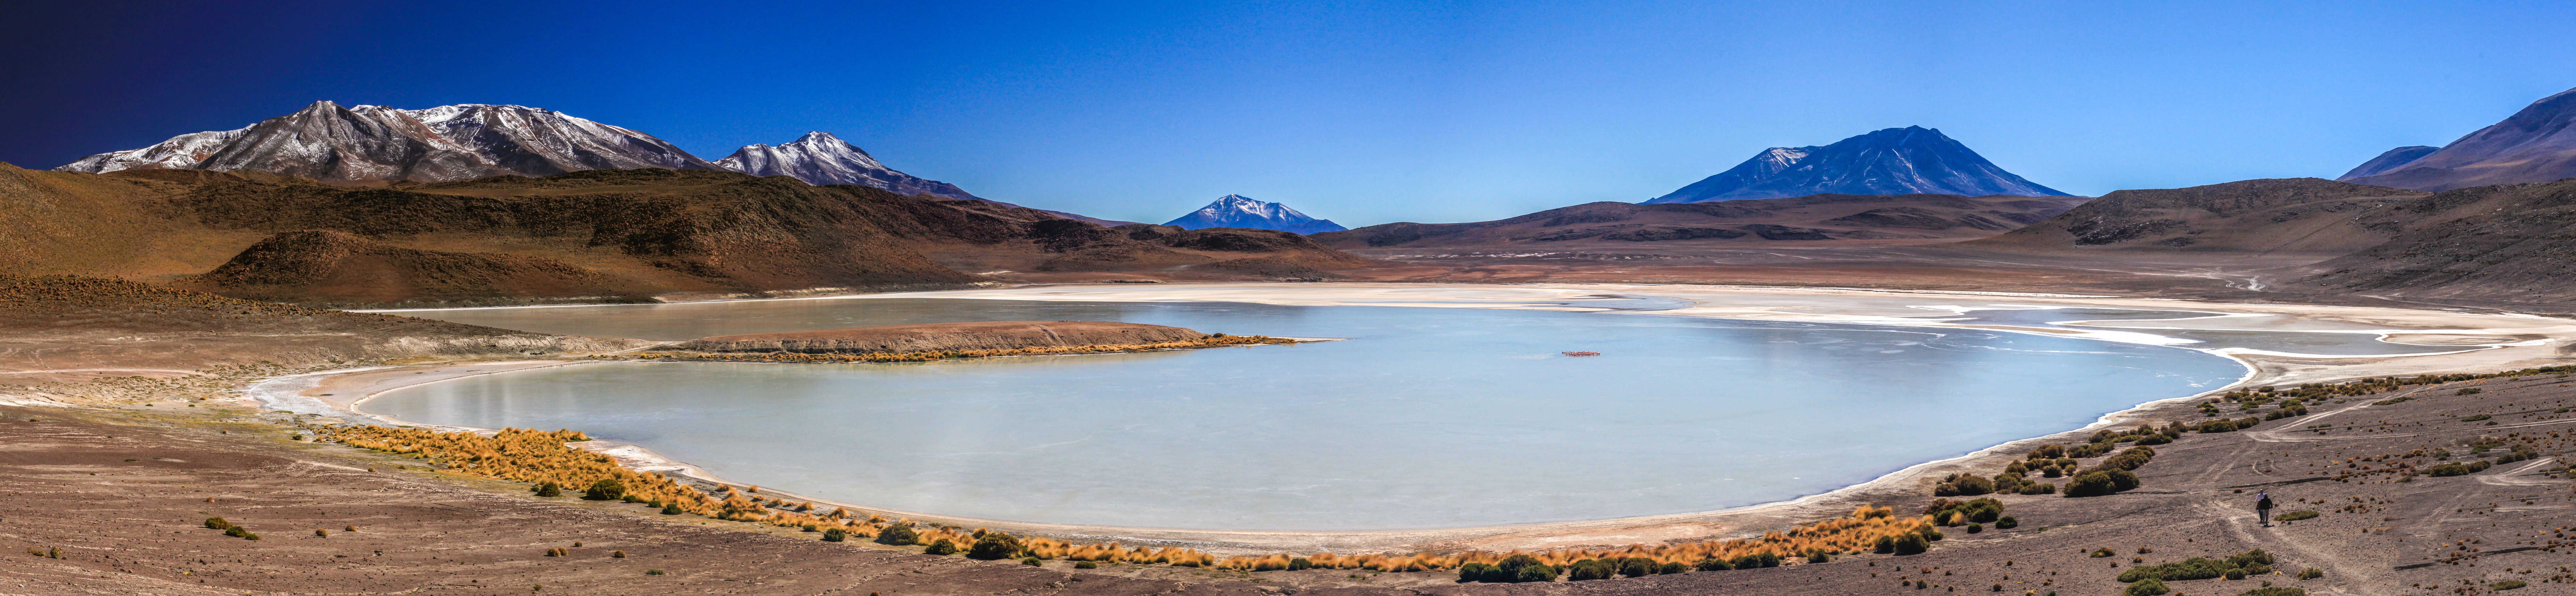 4 day Salt Flat tour from Tupiza to Uyuni, Bolivia.